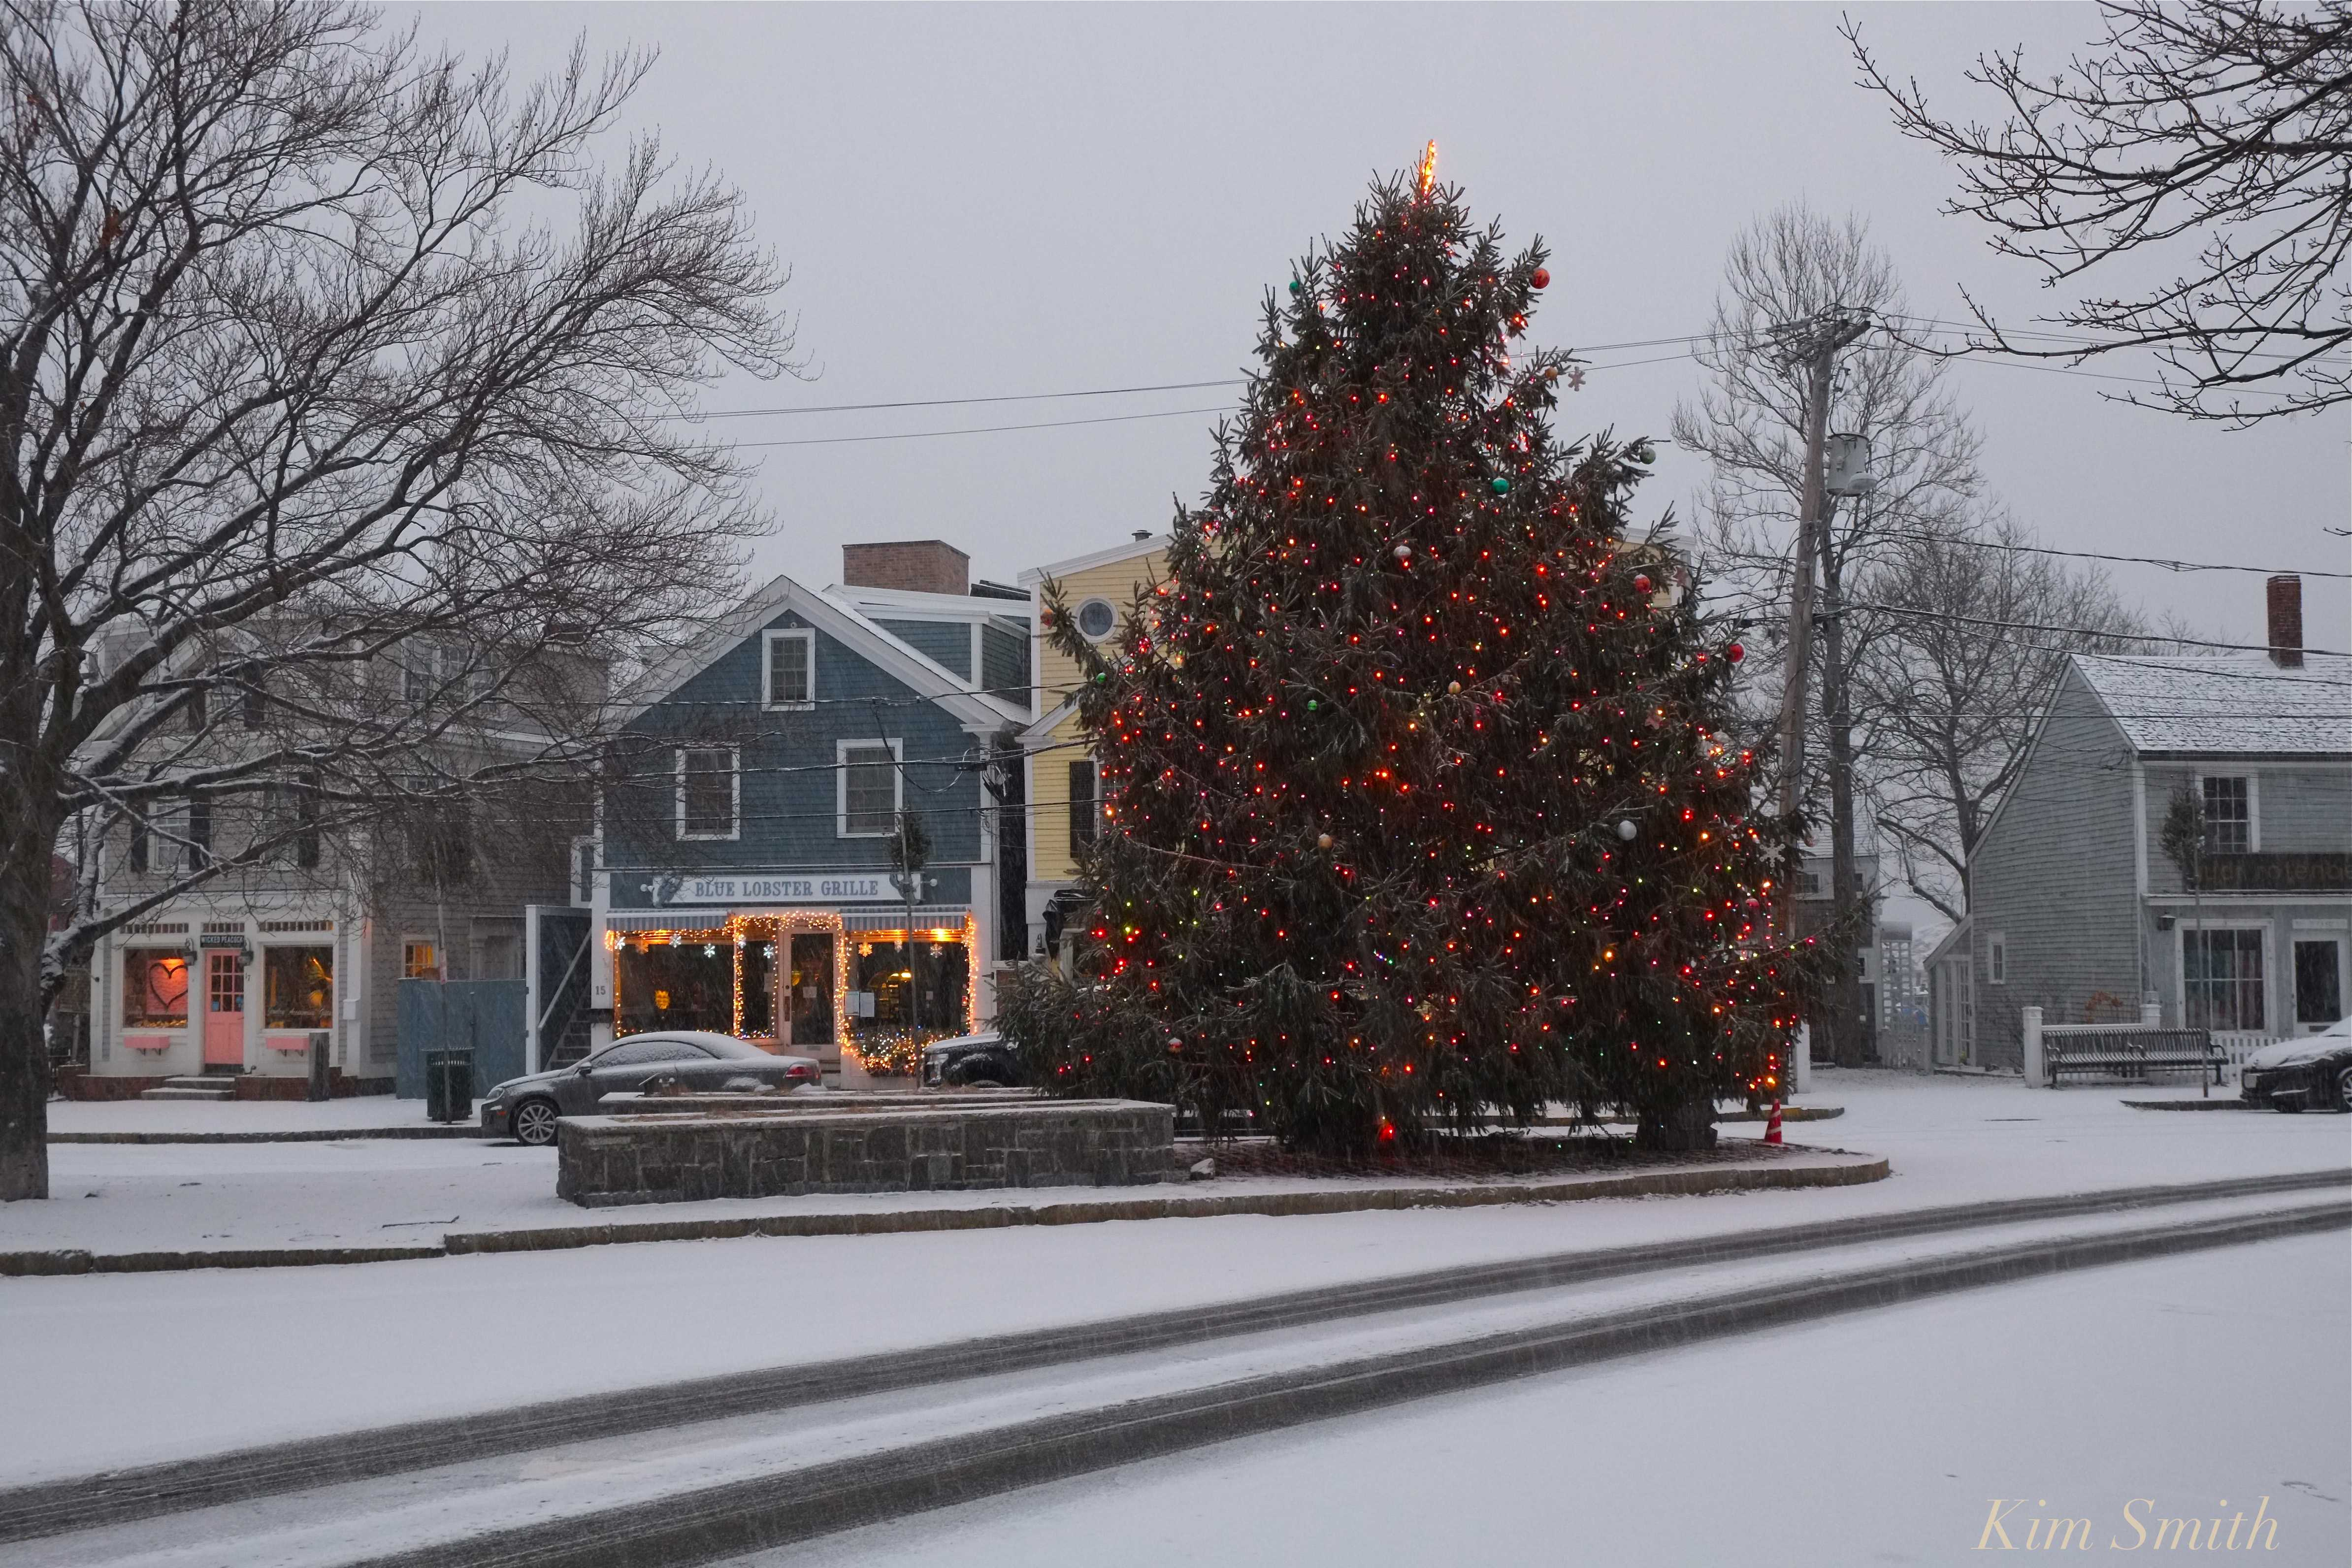 Christmas In Rockport Ma 2020 Family Christmas and Holiday Events on Cape Ann and The North Shore